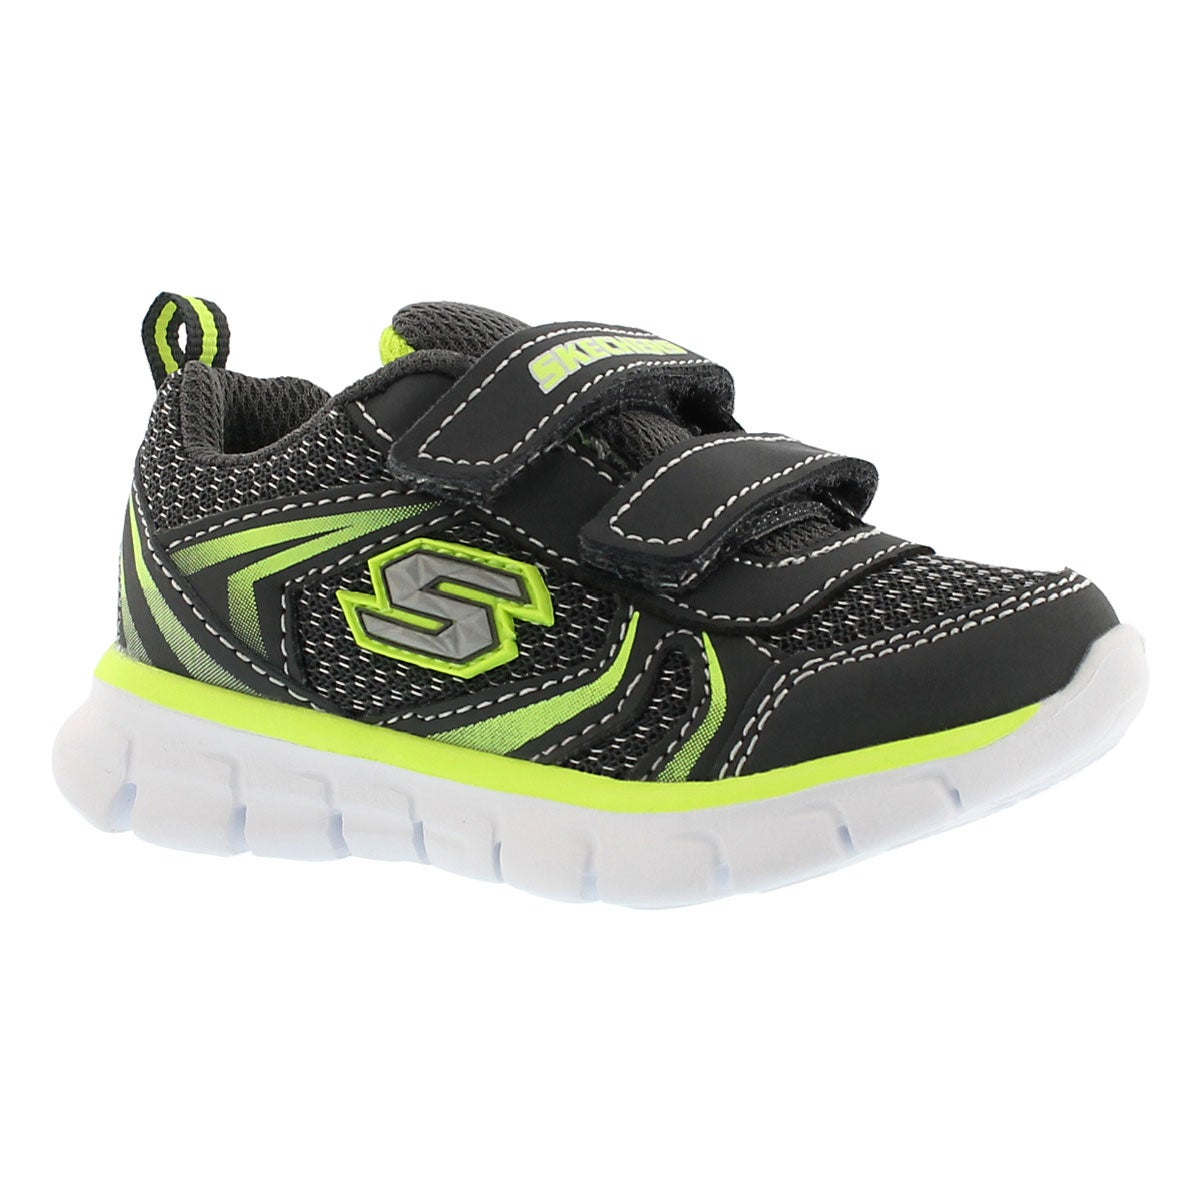 Infants' MINI SPRINT charcoal/lime sneakers